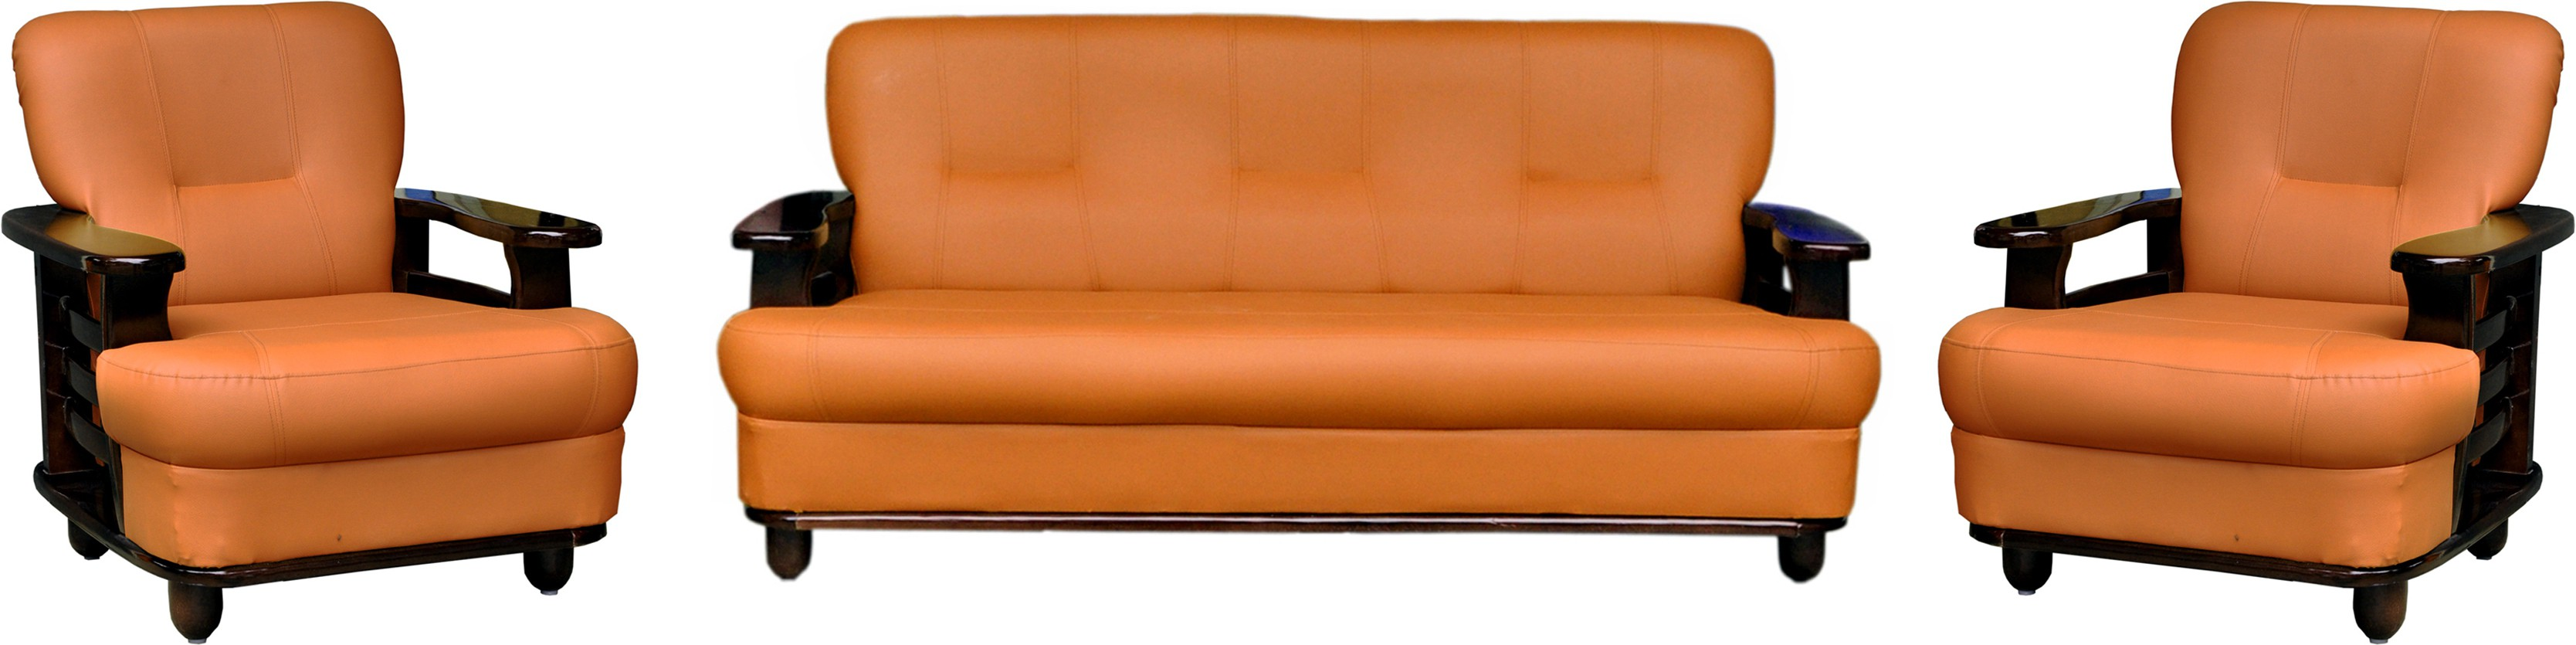 Admirable Knight Industry Leatherette 3 1 1 Rosewood Finish Sofa Cjindustries Chair Design For Home Cjindustriesco